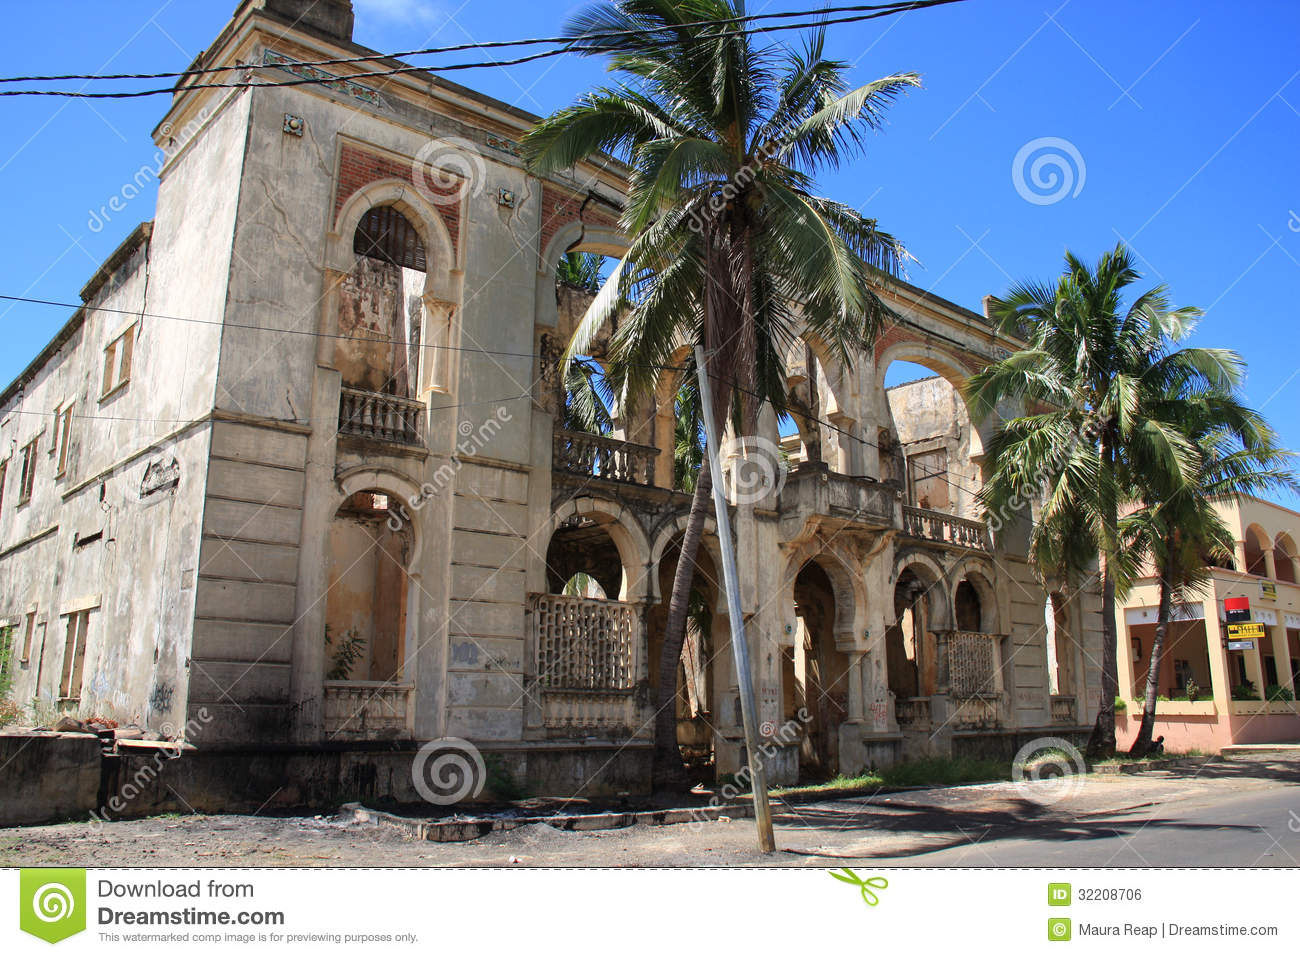 Hotel ruins royalty free stock image image 32208706 for Period hotel